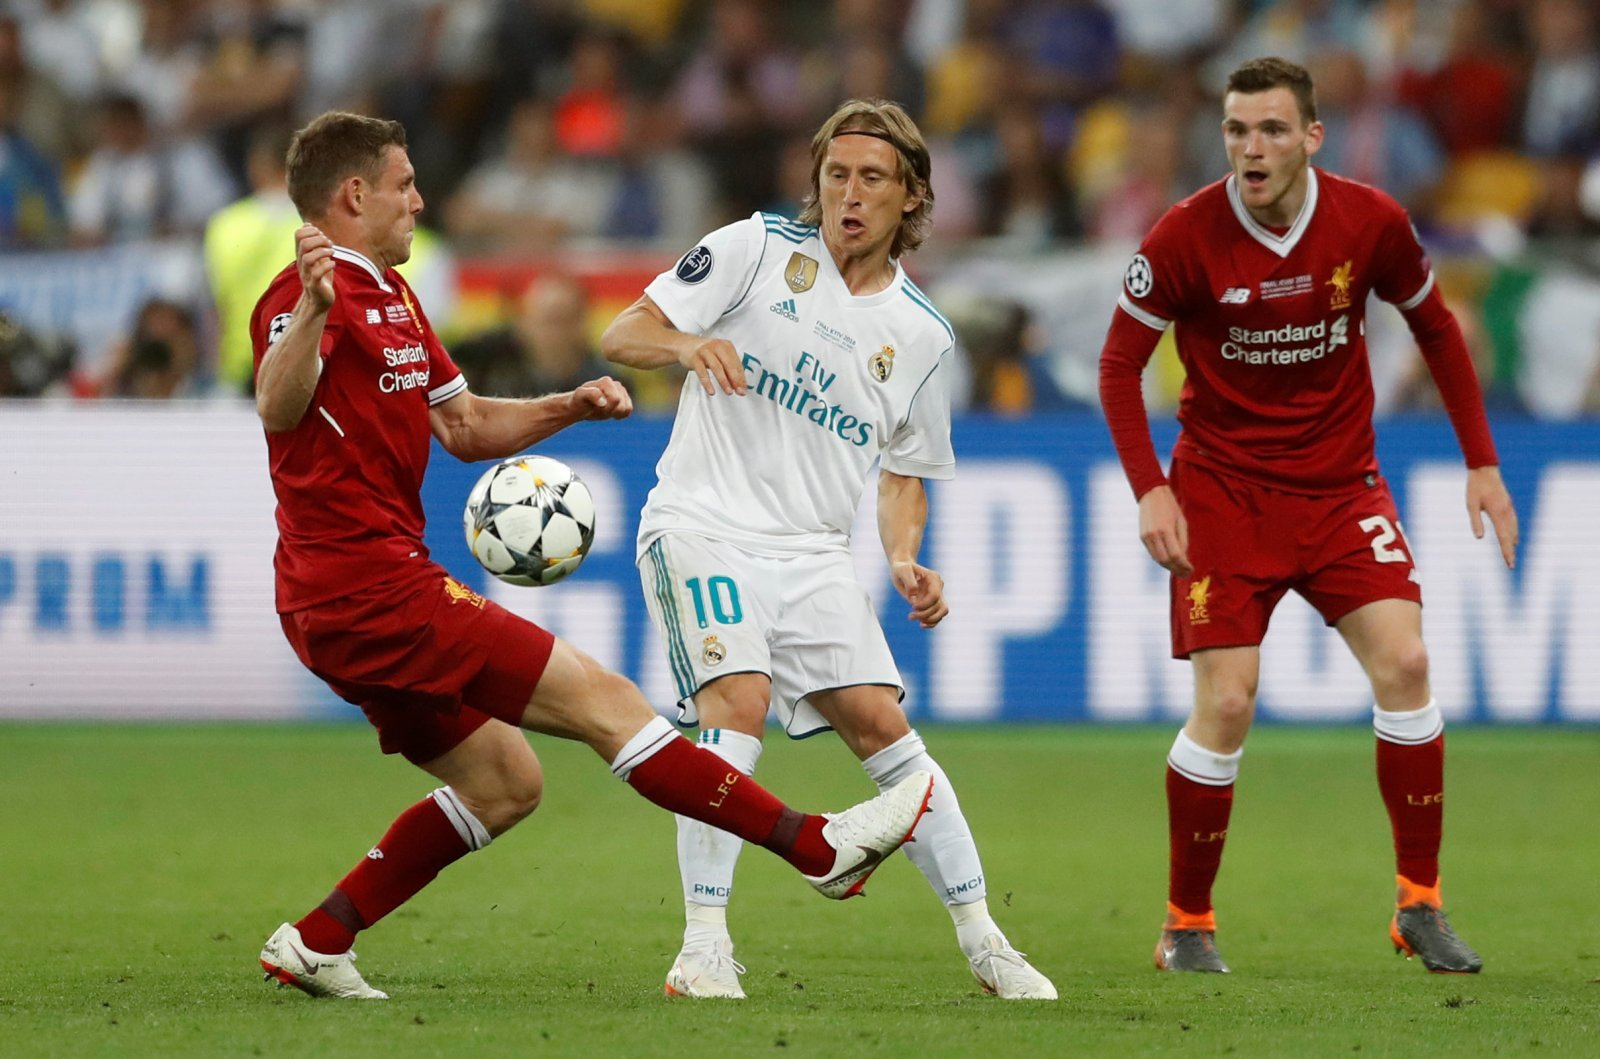 Manchester United will regret not signing this Real Madrid star over the summer